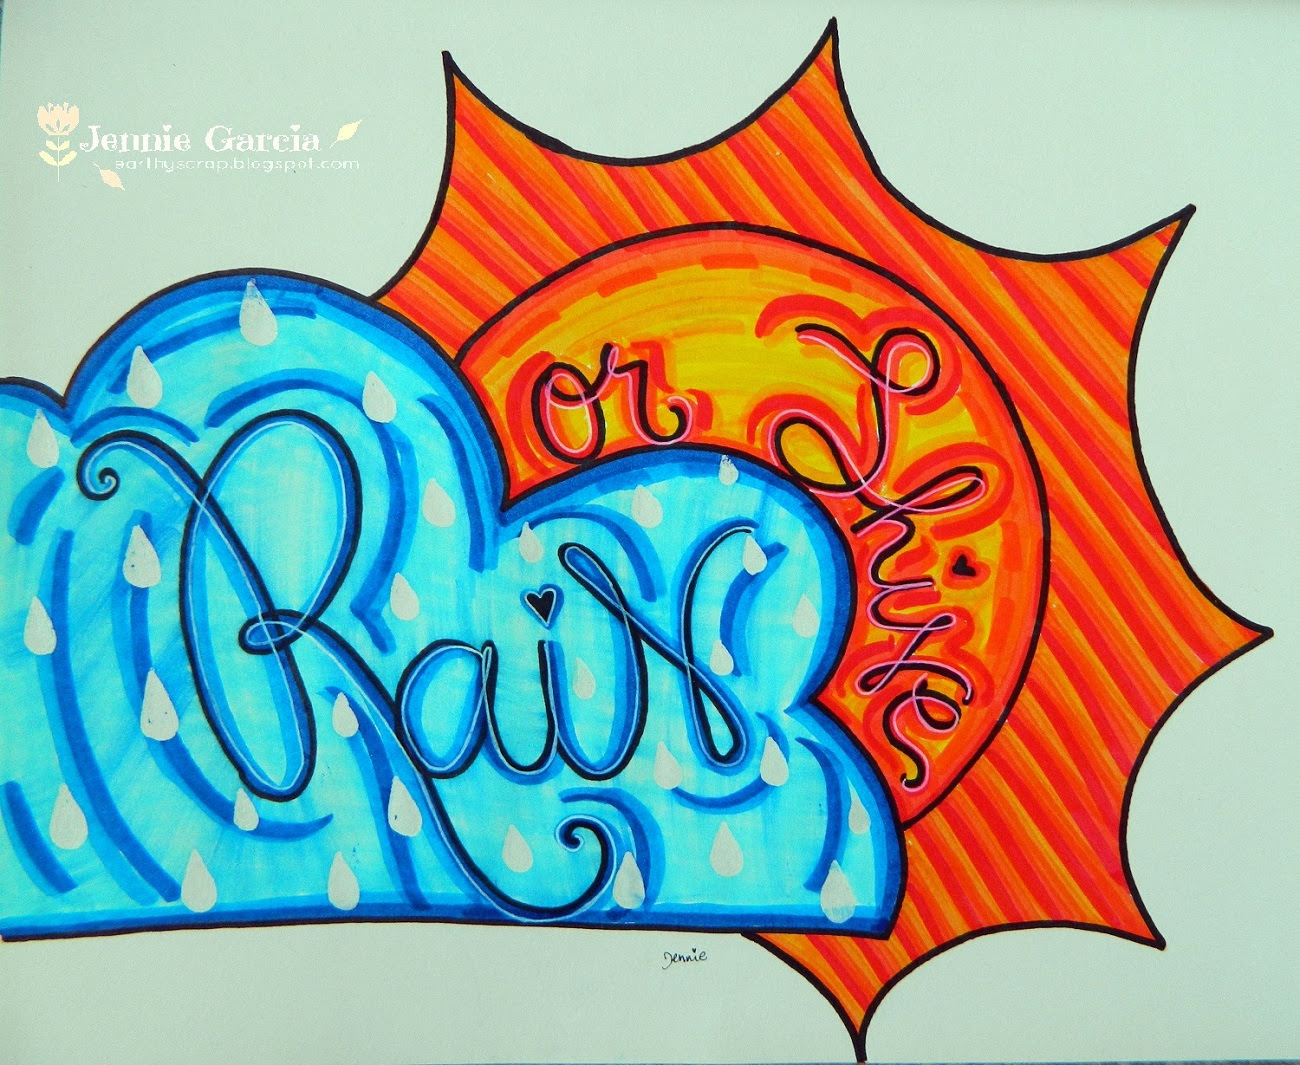 Lettering Quotes By Jennie Garcia Tombow Usa Blog